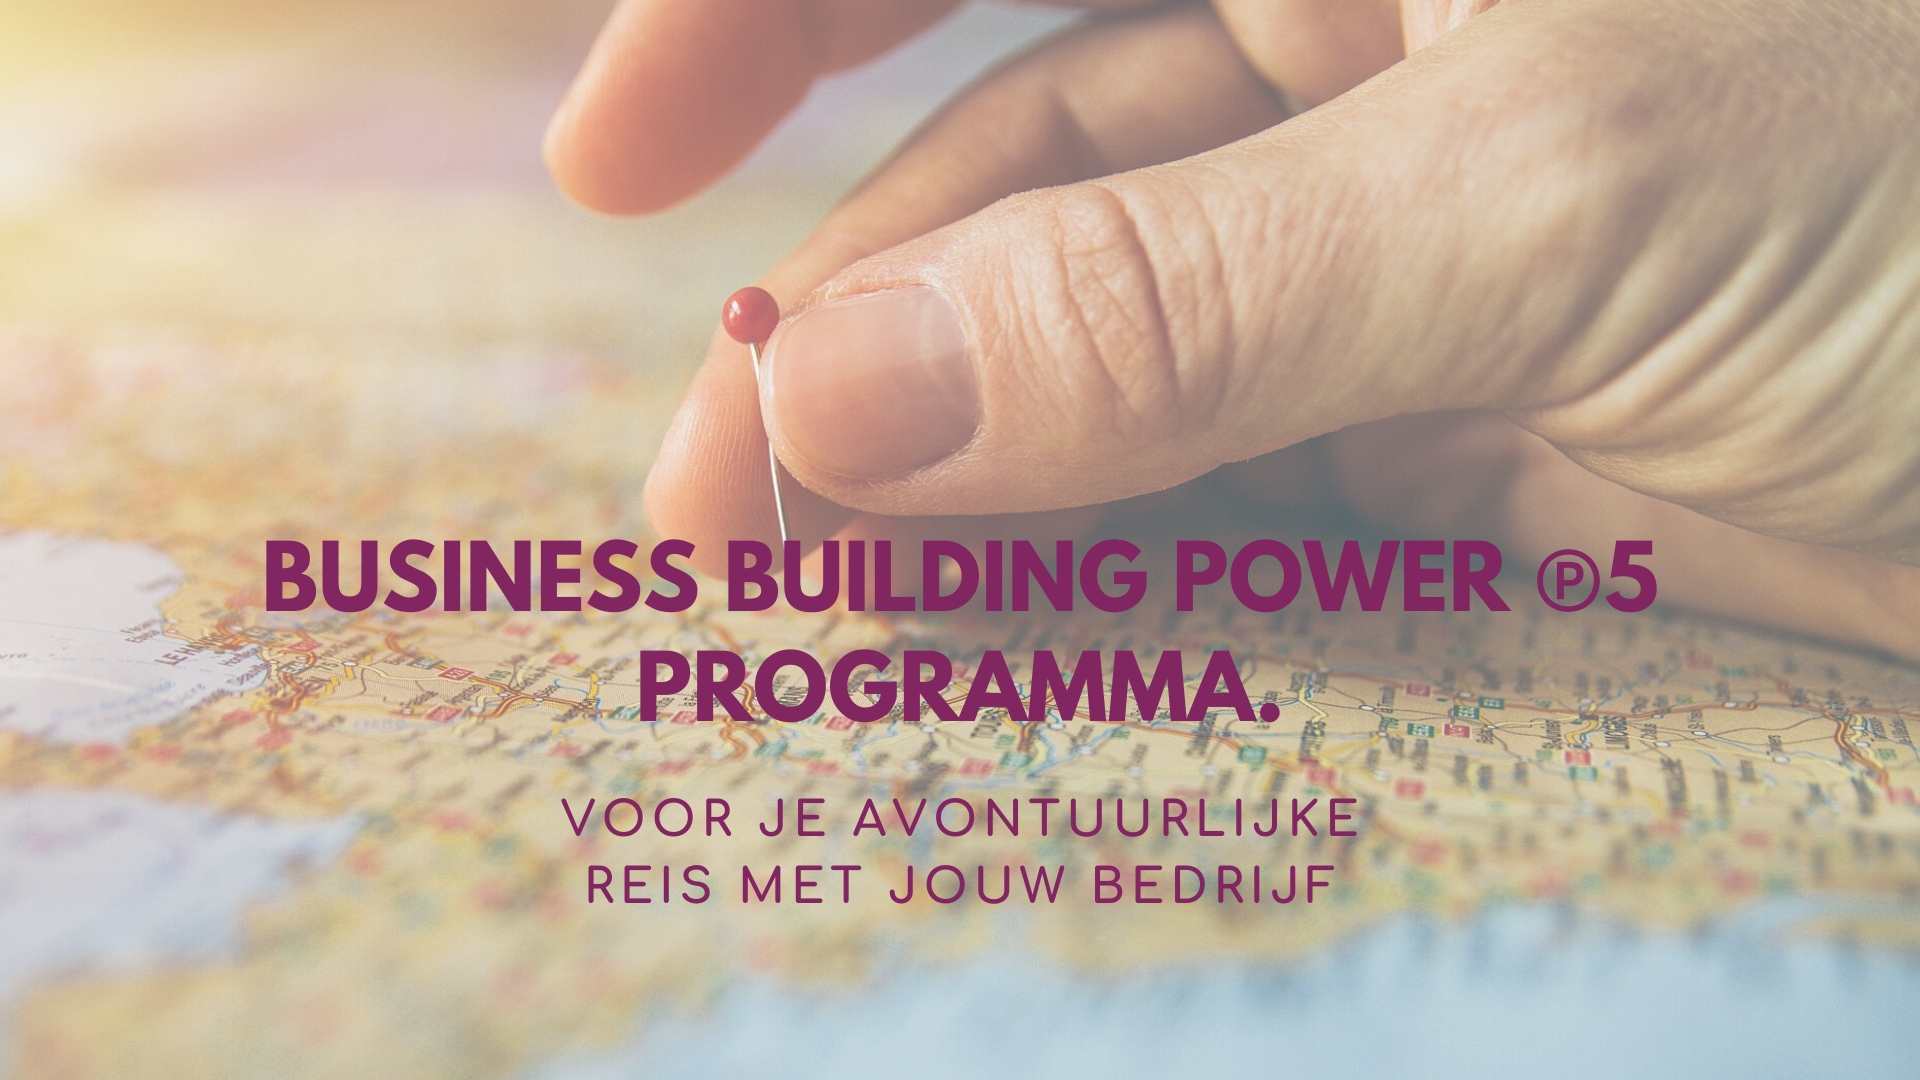 Business Builder power 5p Program